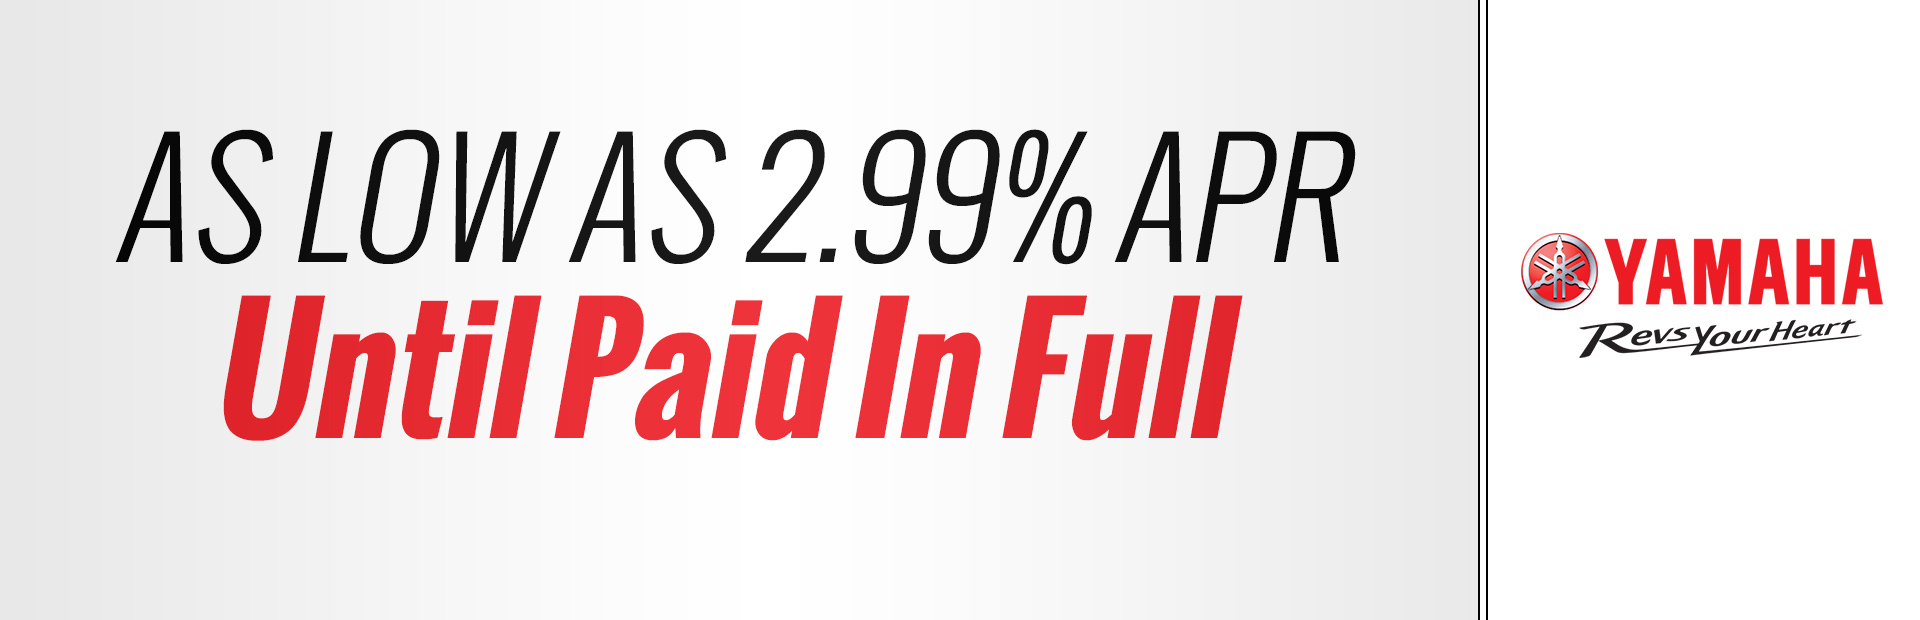 As Low As 2.99% APR Until Paid In Full